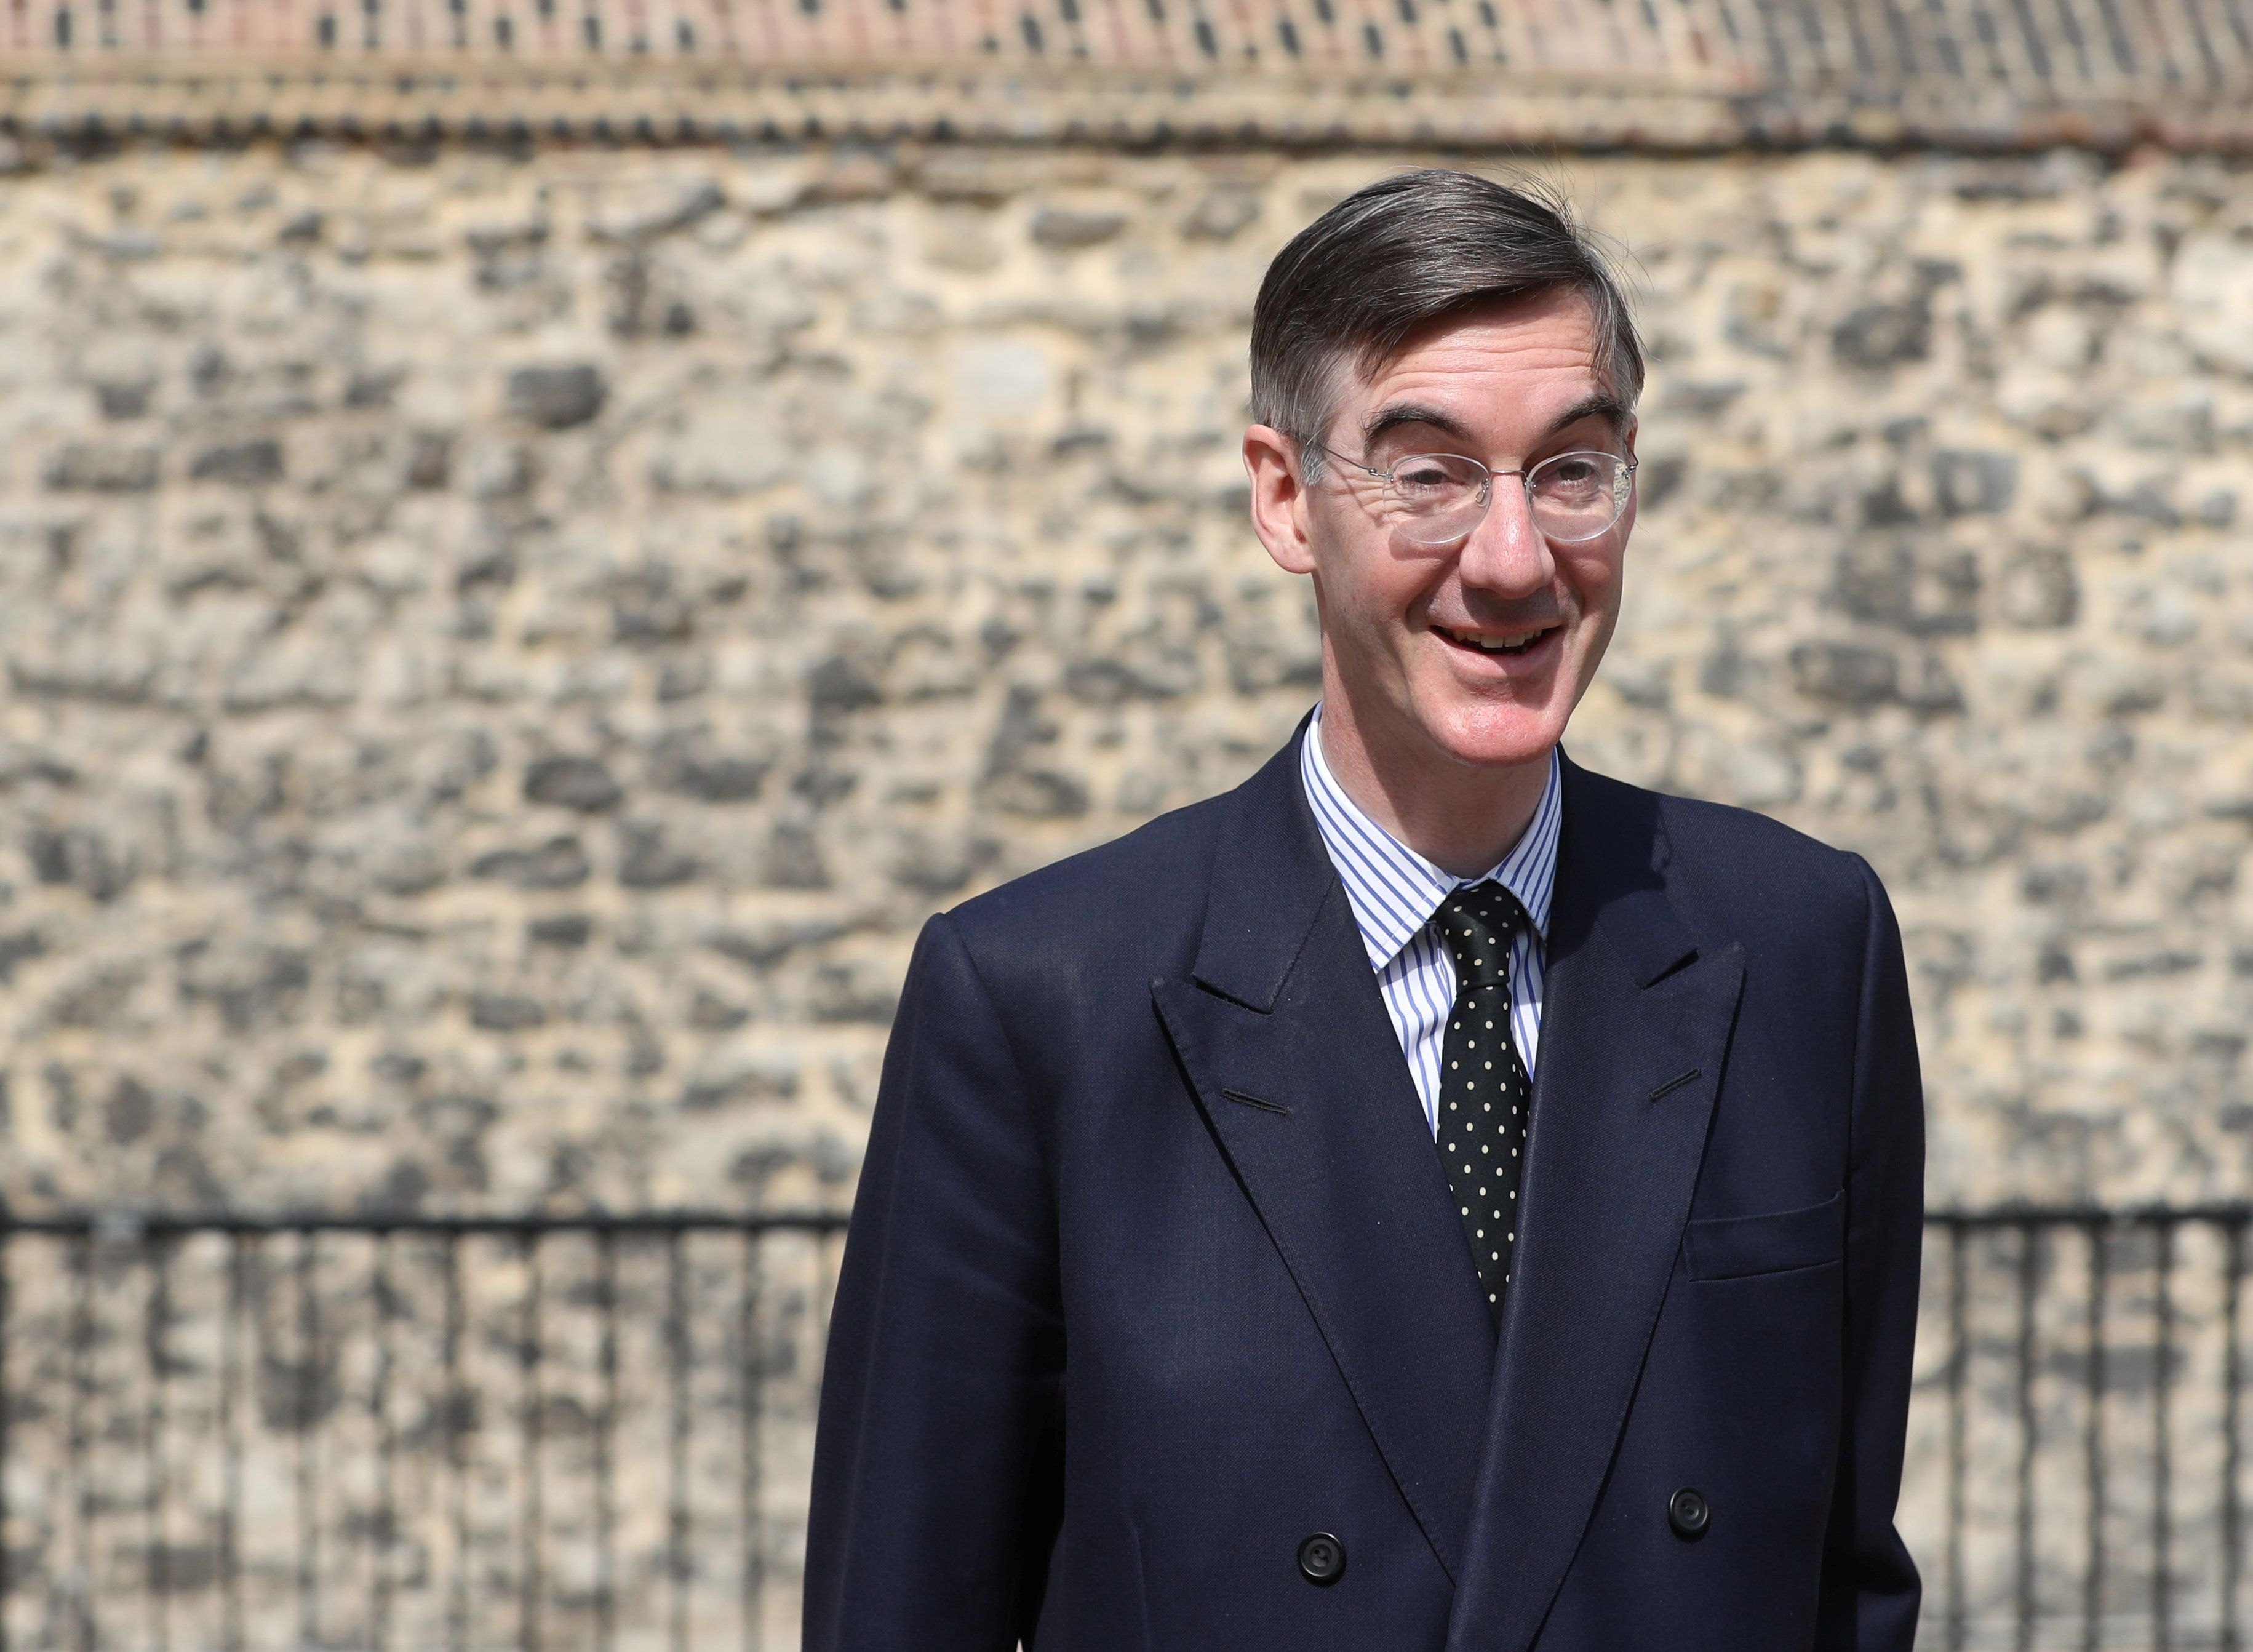 Jacob Rees-Mogg Wants People 'Inspected' At The Irish Border - Just Like During The